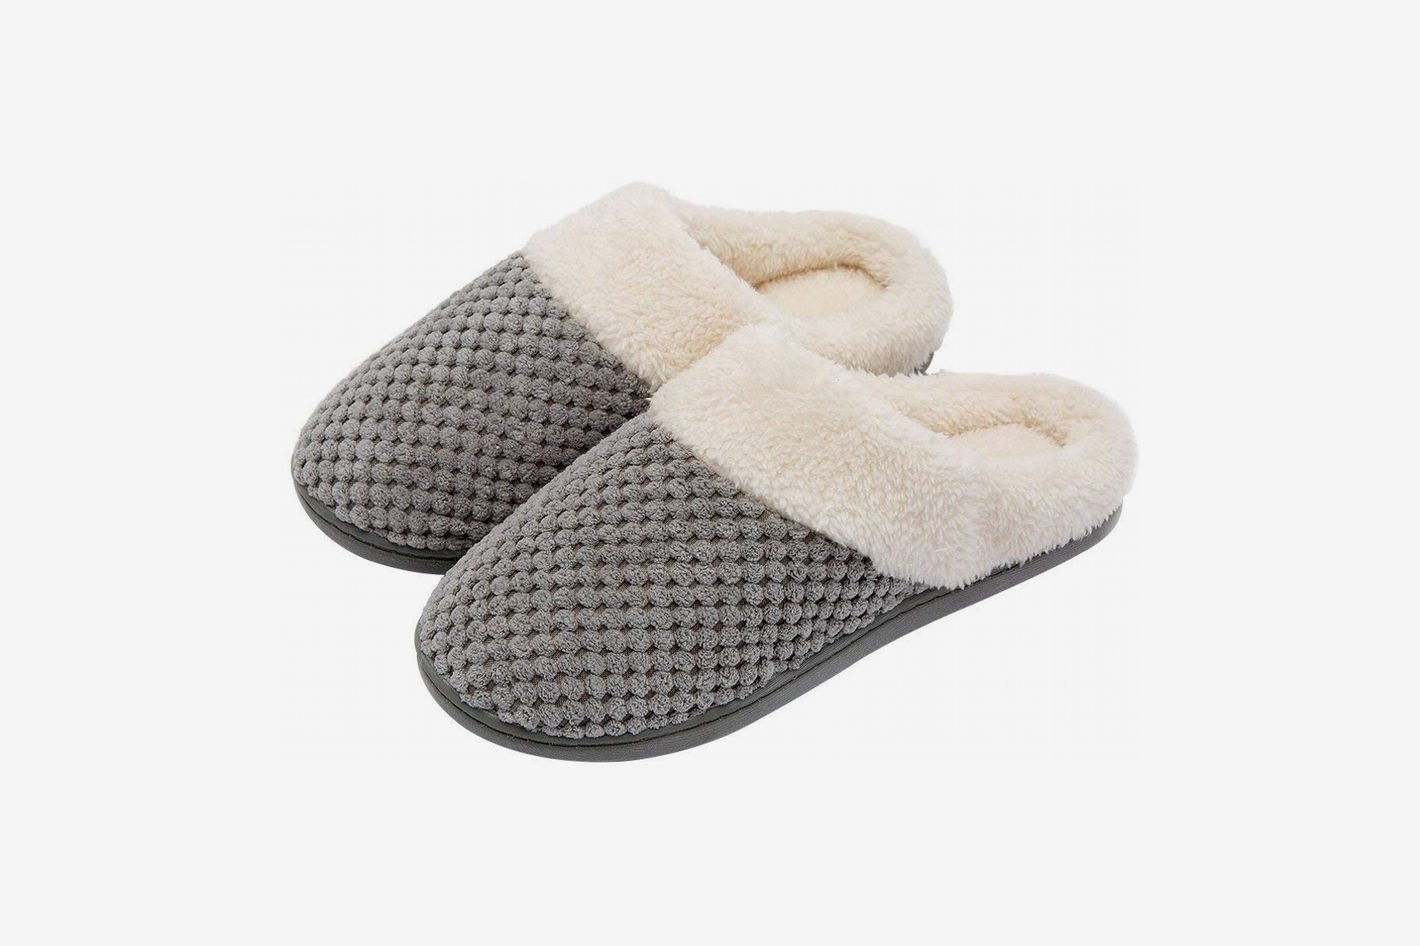 80da1296d3bb Women s Soft Slip-on Memory Foam Slippers